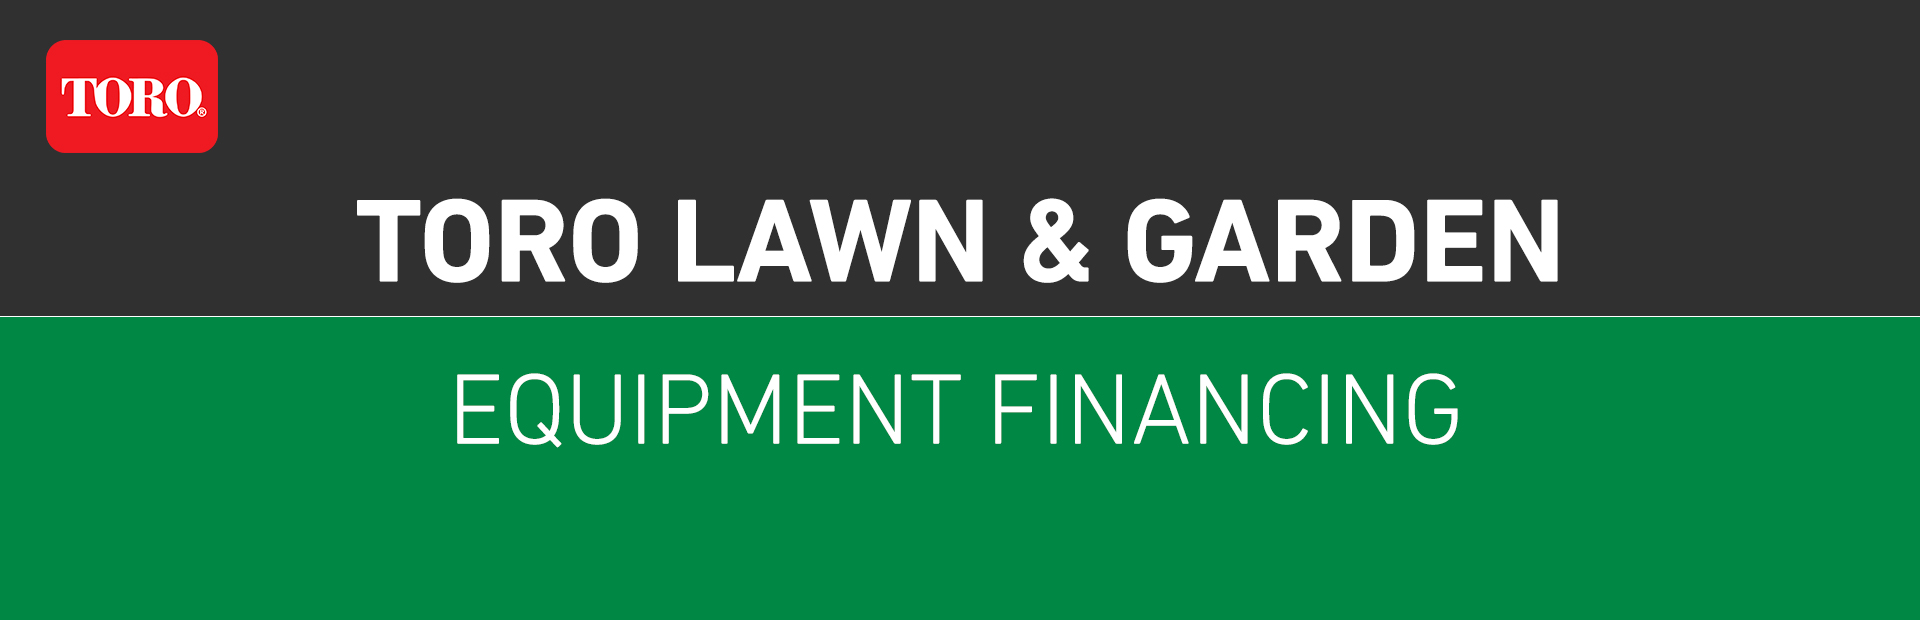 Toro: Toro Lawn & Garden Equipment Financing